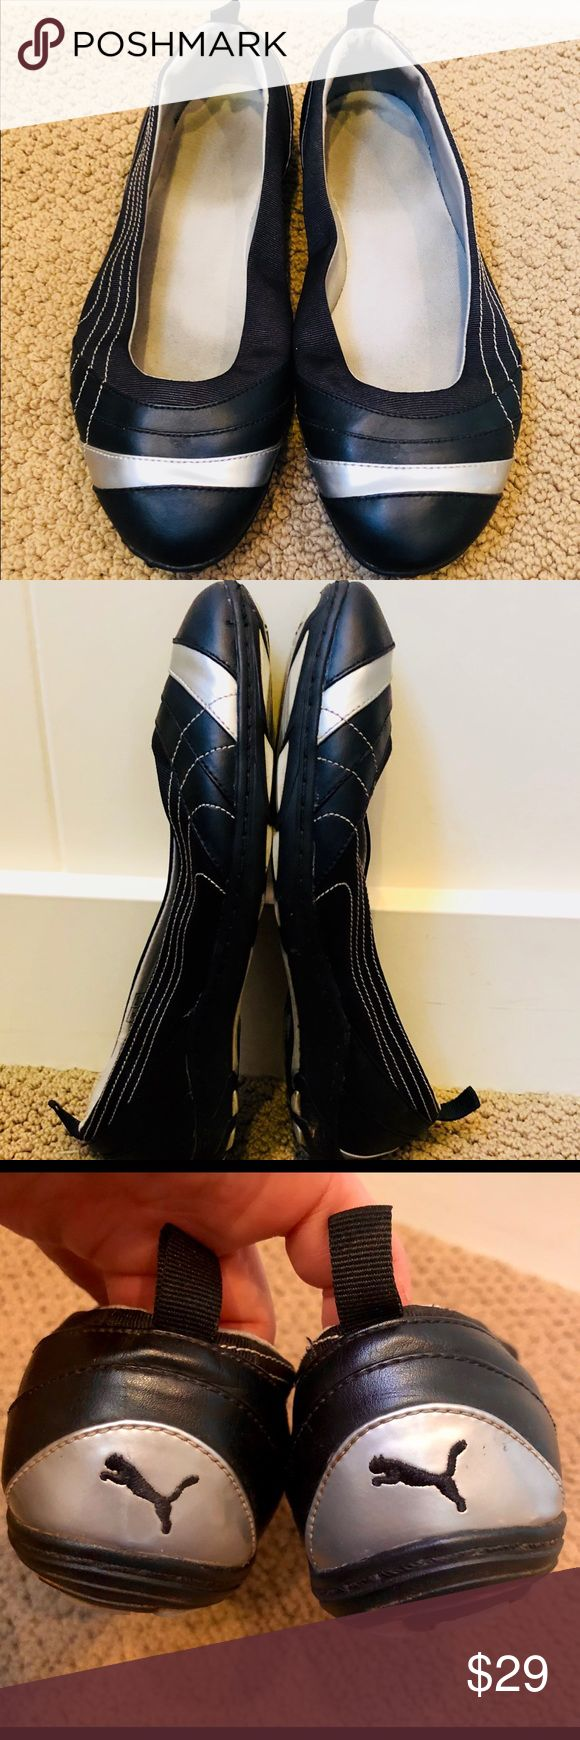 Comfortable Puma flats in great condition! Sz 8.5W Comfortable Puma flats in great condition! Sz 8.5W. Only worn a few times Puma Shoes Flats & Loafers